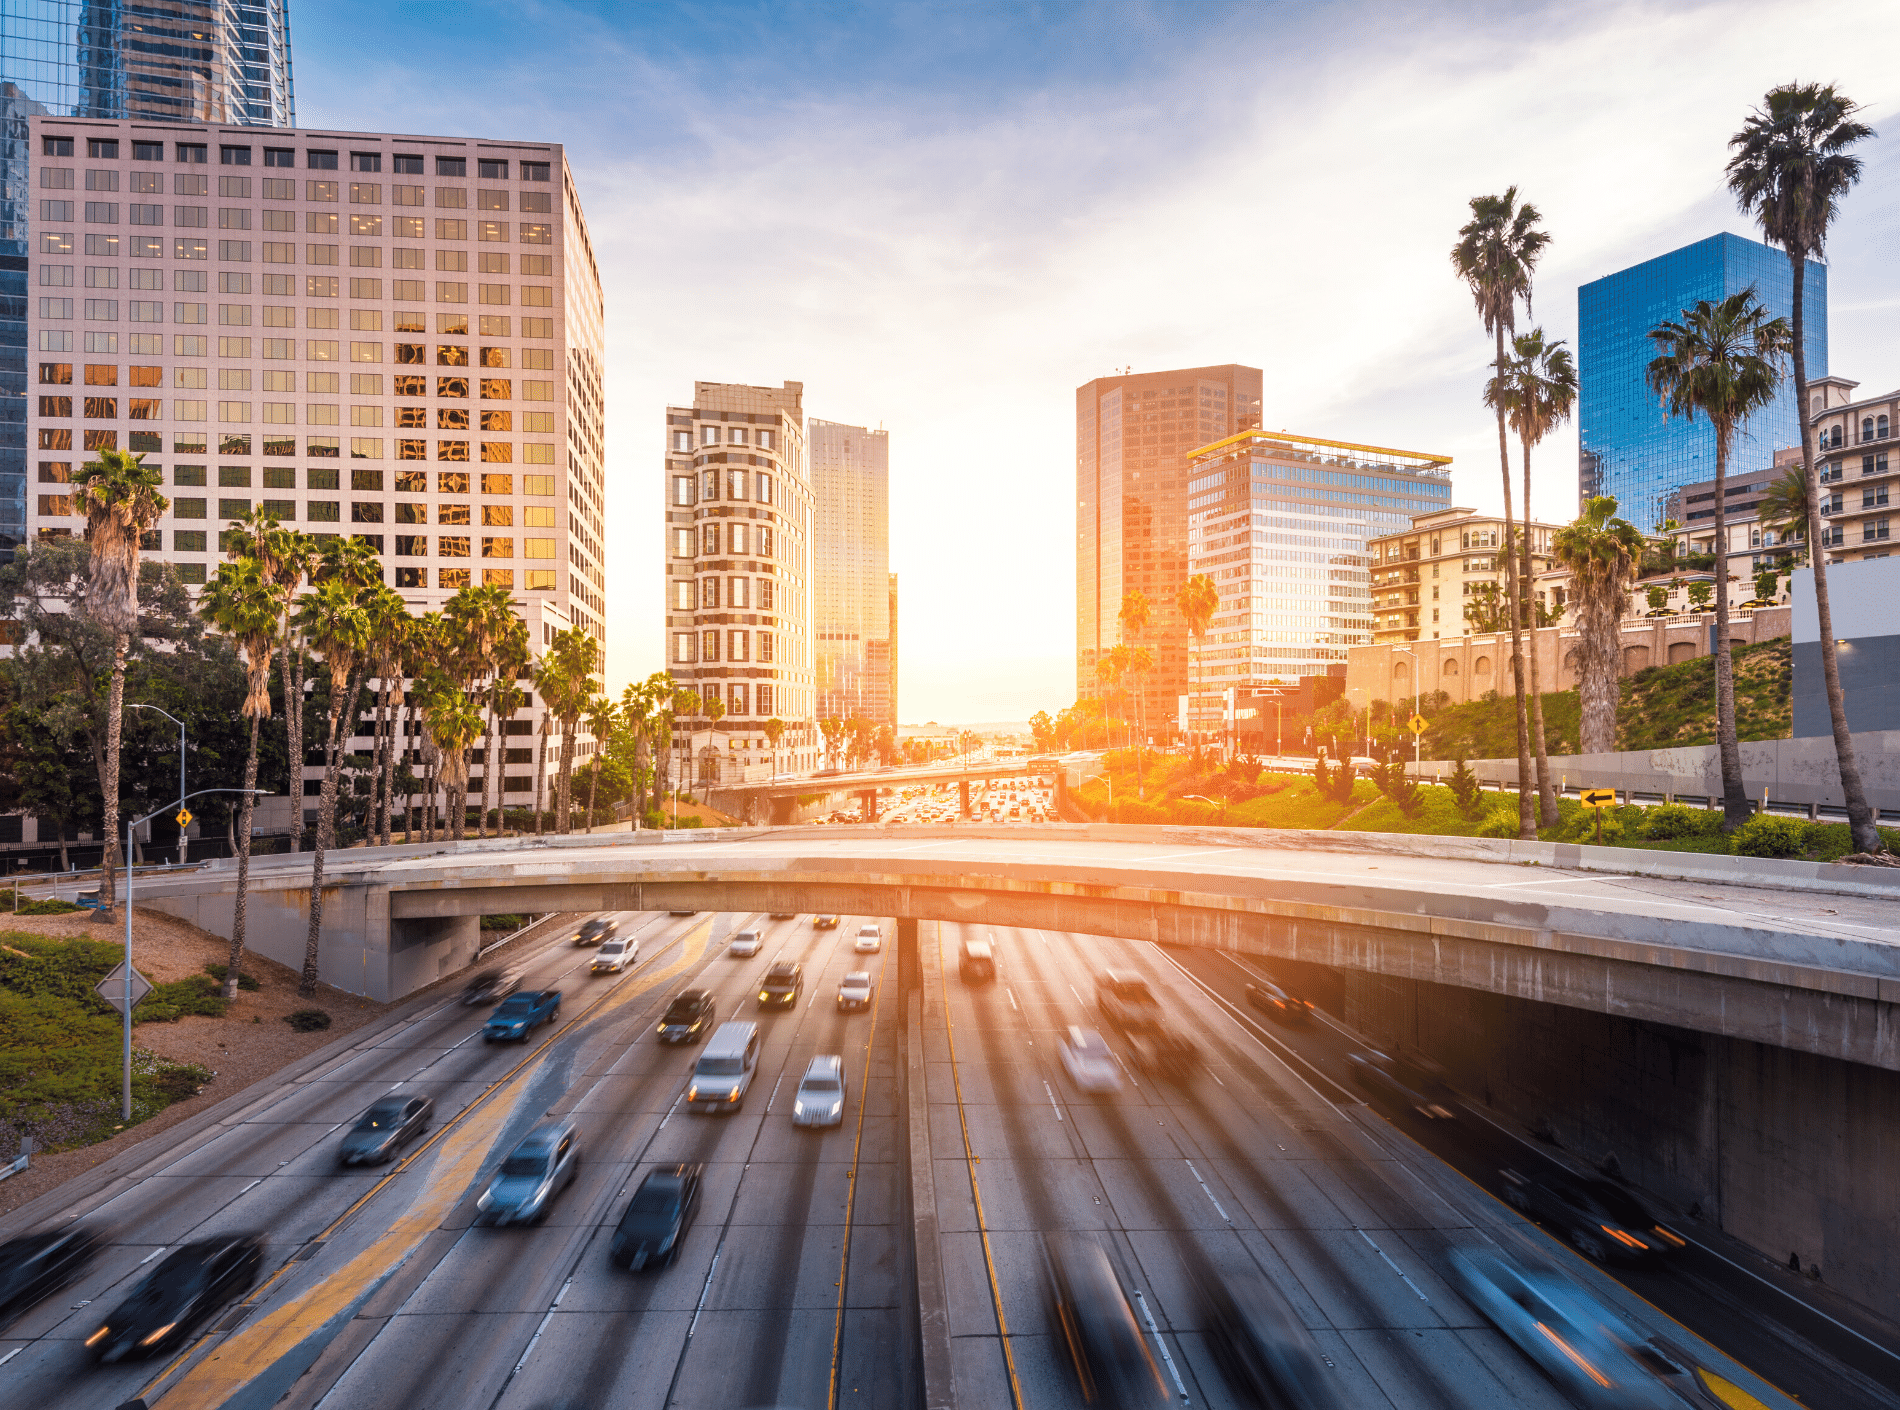 Tips to Help You Deal With Los Angeles Traffic